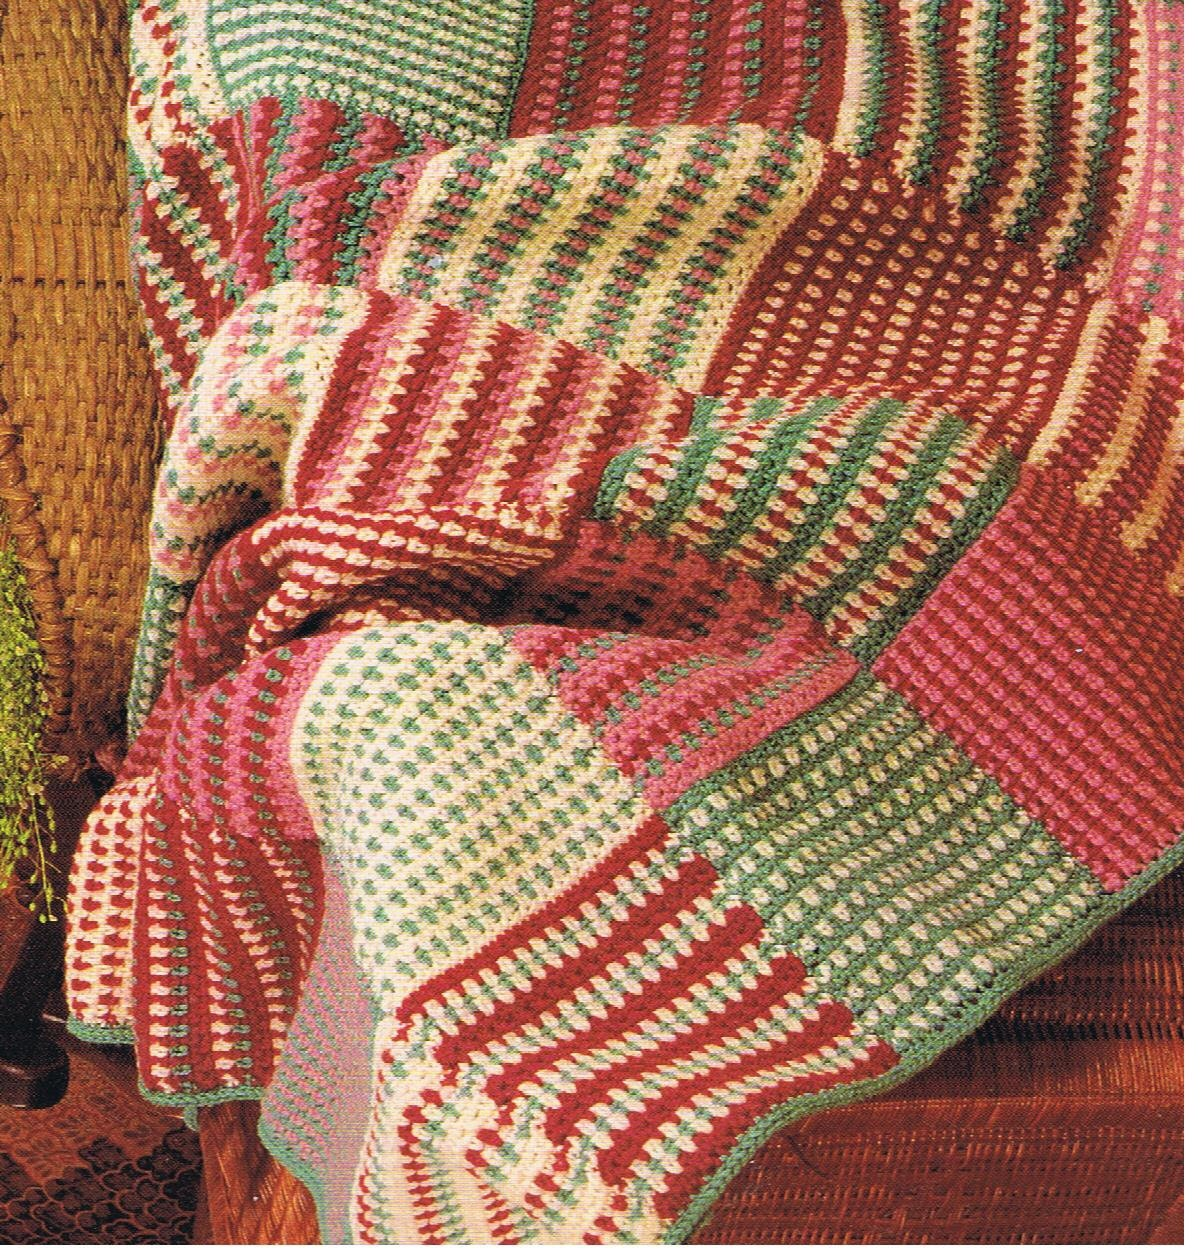 Crochet Beginner Afghan Patterns : beginner afghan crochet pattern/pdf